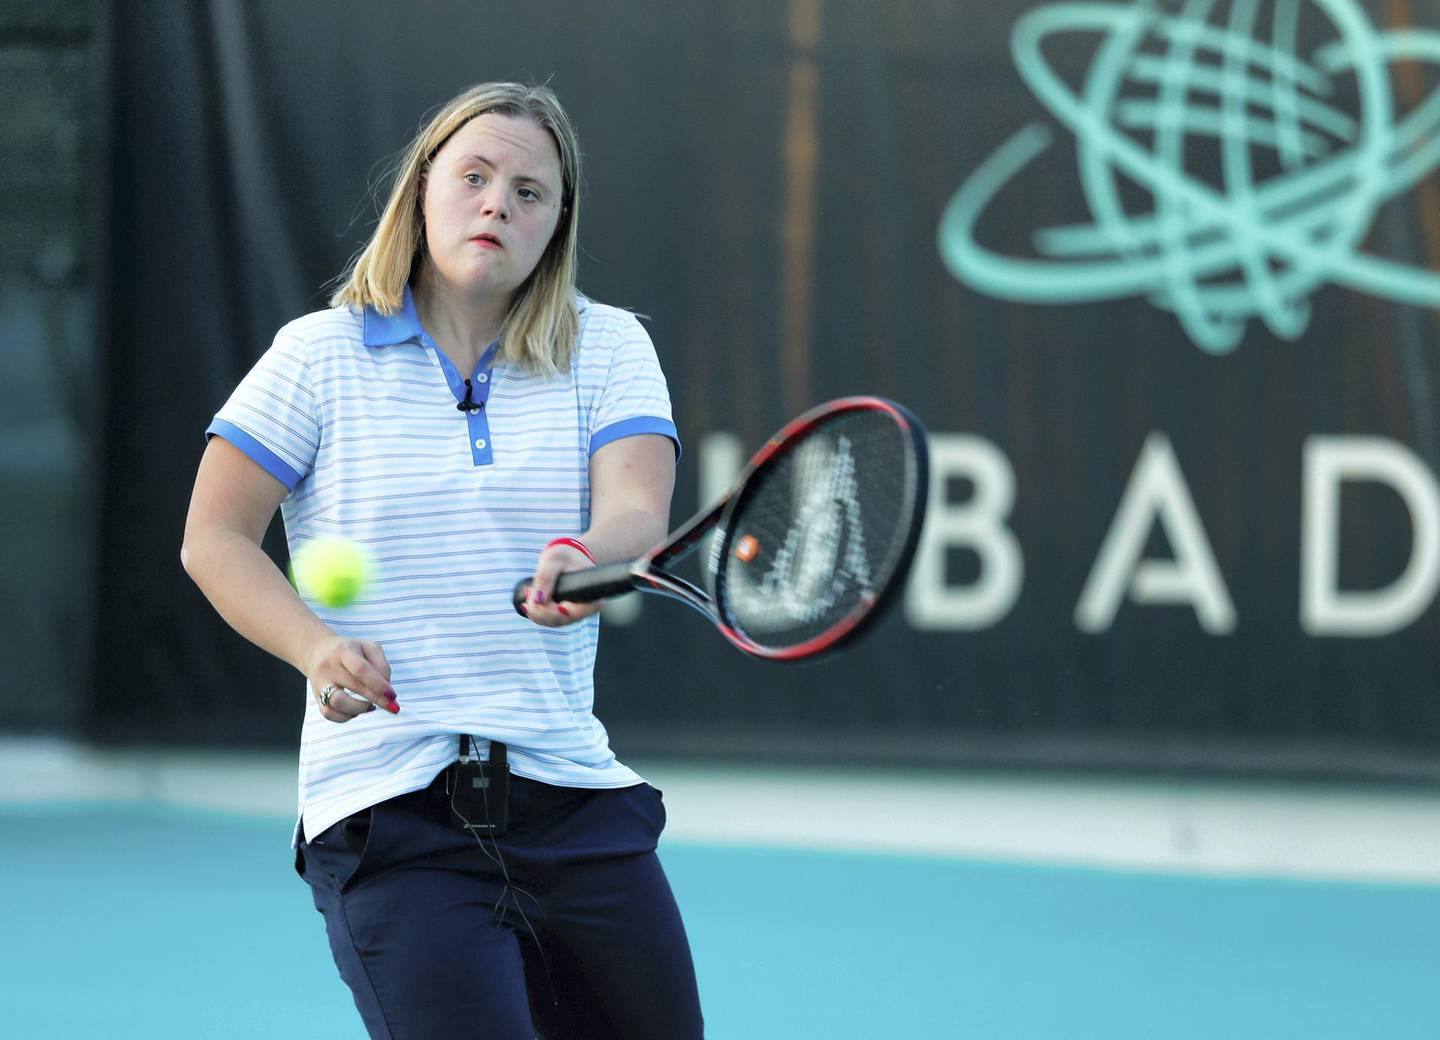 Abu Dhabi, U.A.E., October 22, 2018.  Clara Lehmkuhl has Down Syndrome and is training to play singles tennis at the upcoming Special Olympics; it is also Down Syndrome Awareness month.Victor Besa / The NationalSection:  NAReporter:  Ann Marie McQueen